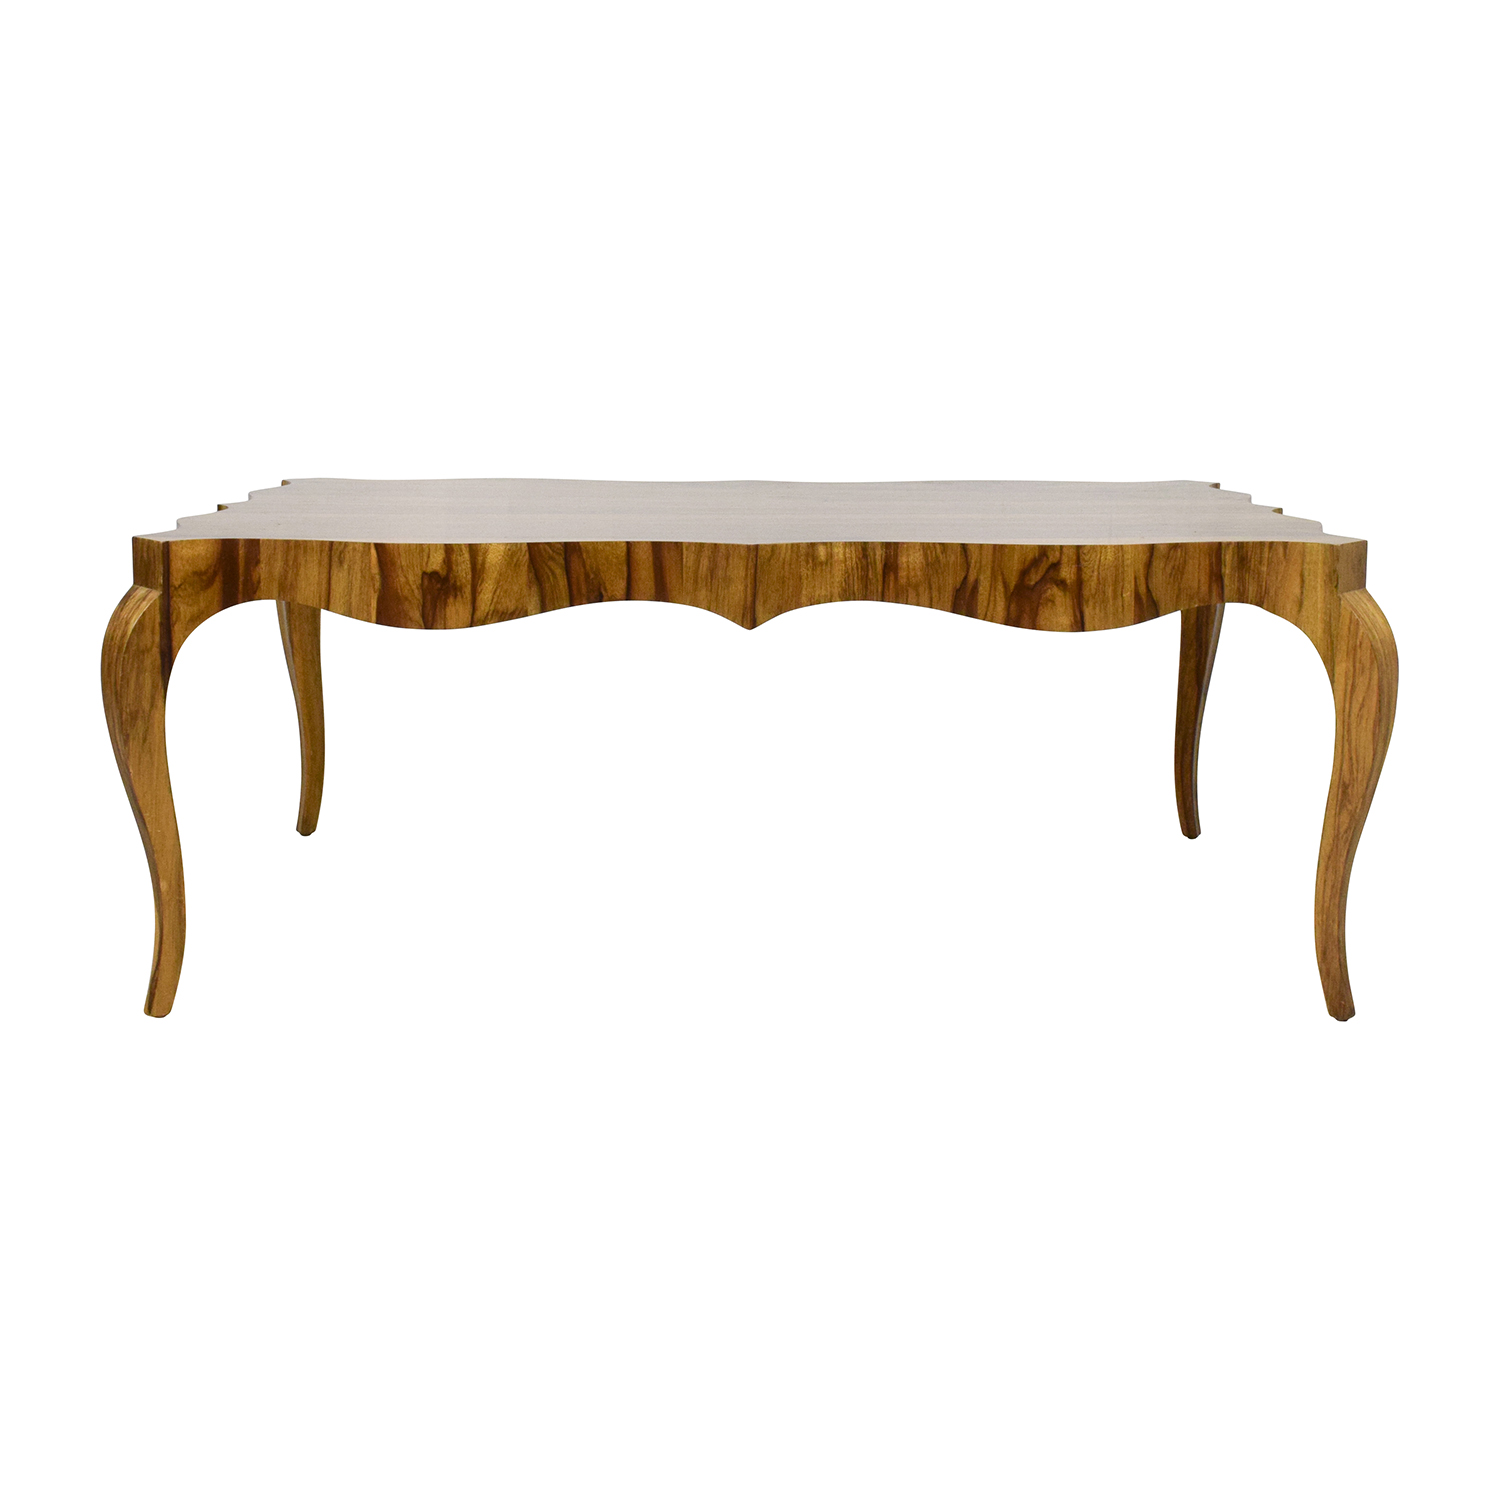 90% OFF Rooms to go Rooms to Go Metal Oval Coffee Table Tables